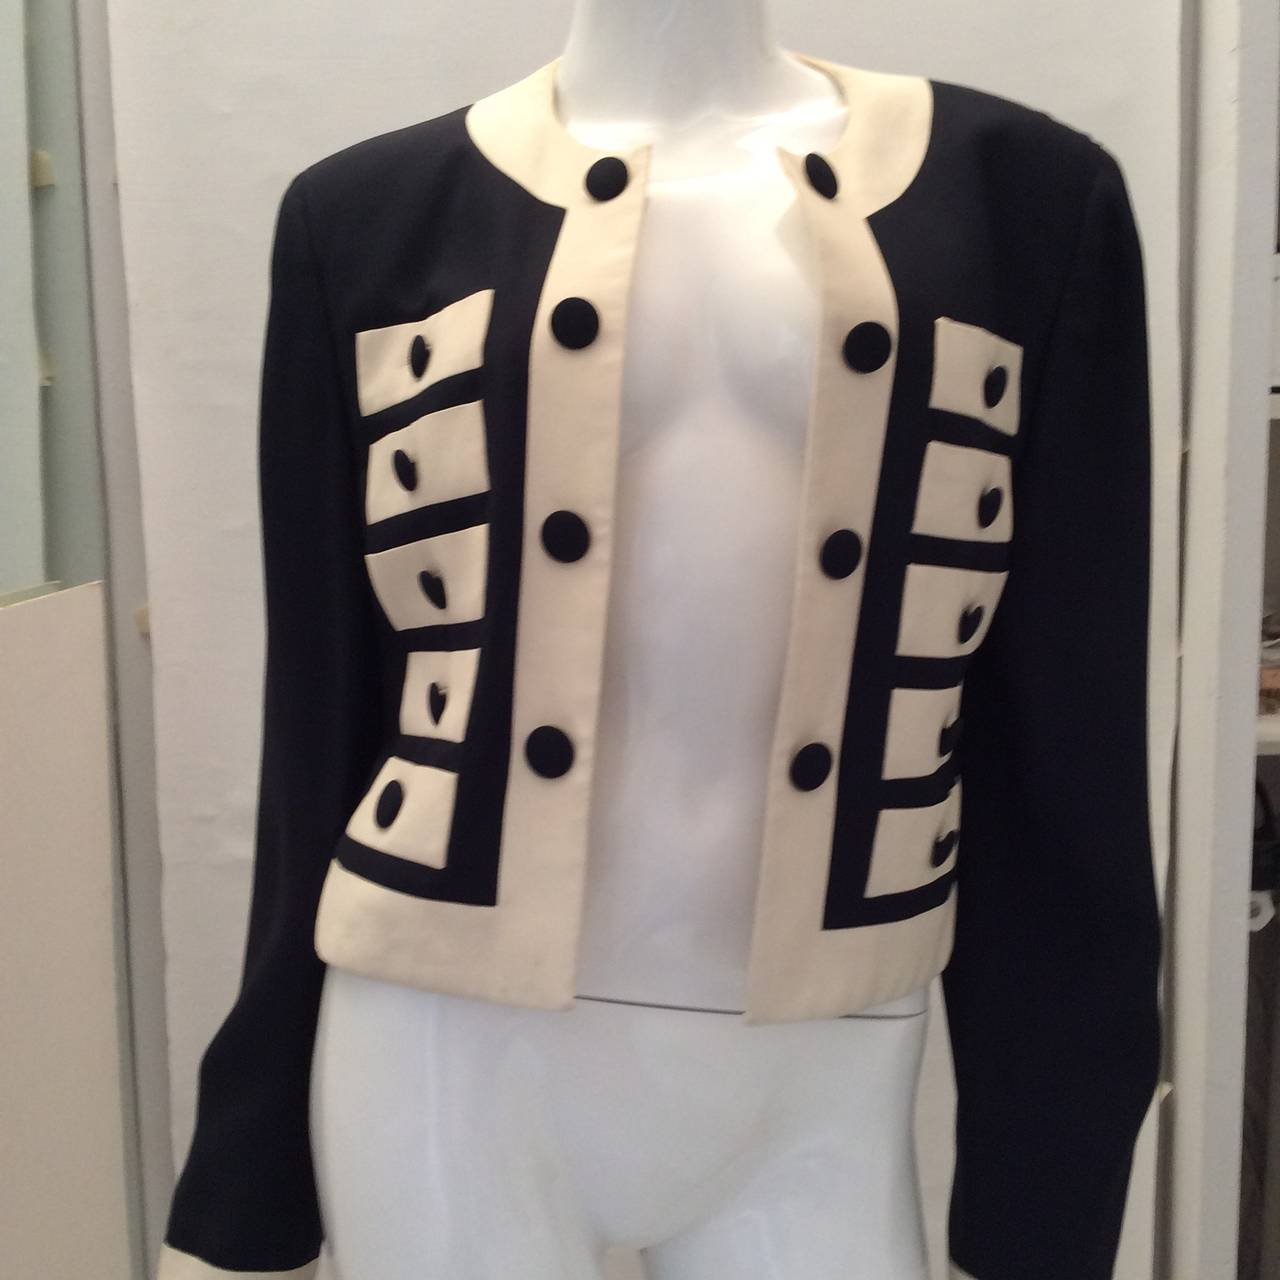 Black Moschino Couture Jacket - Navy and White - Early to mid 90's For Sale